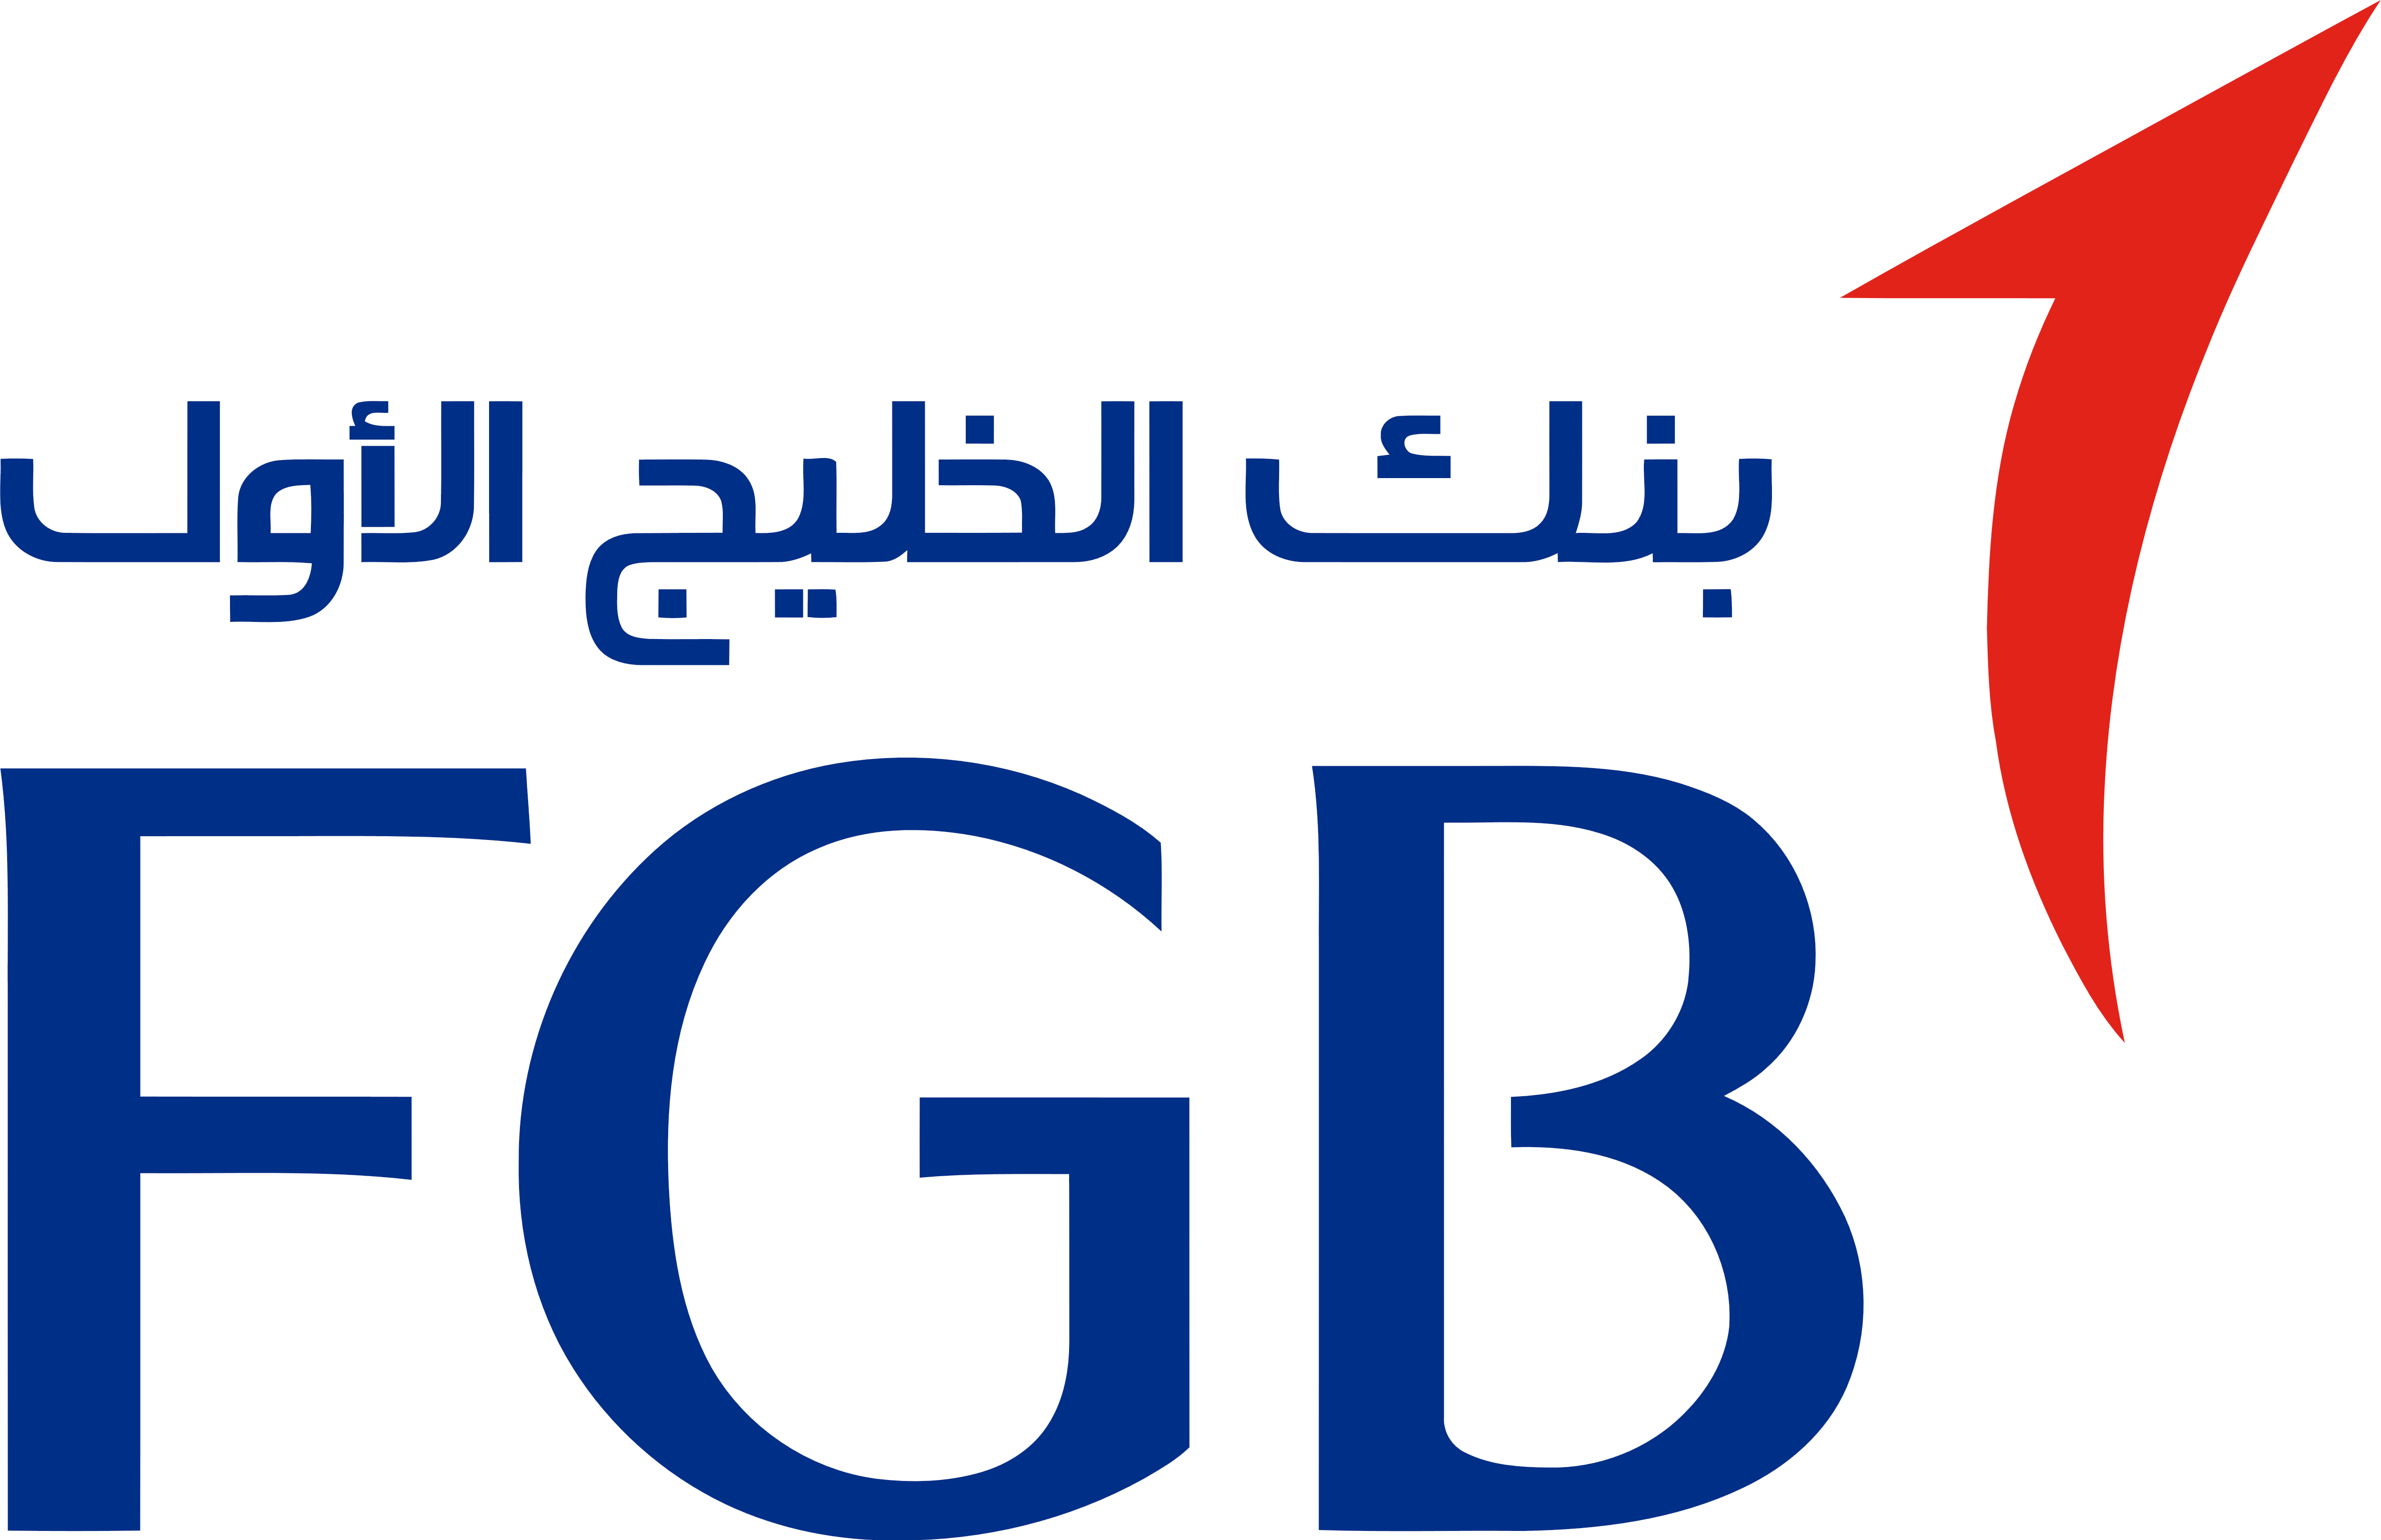 Fgb Bank First Gulf Bank Logos Download